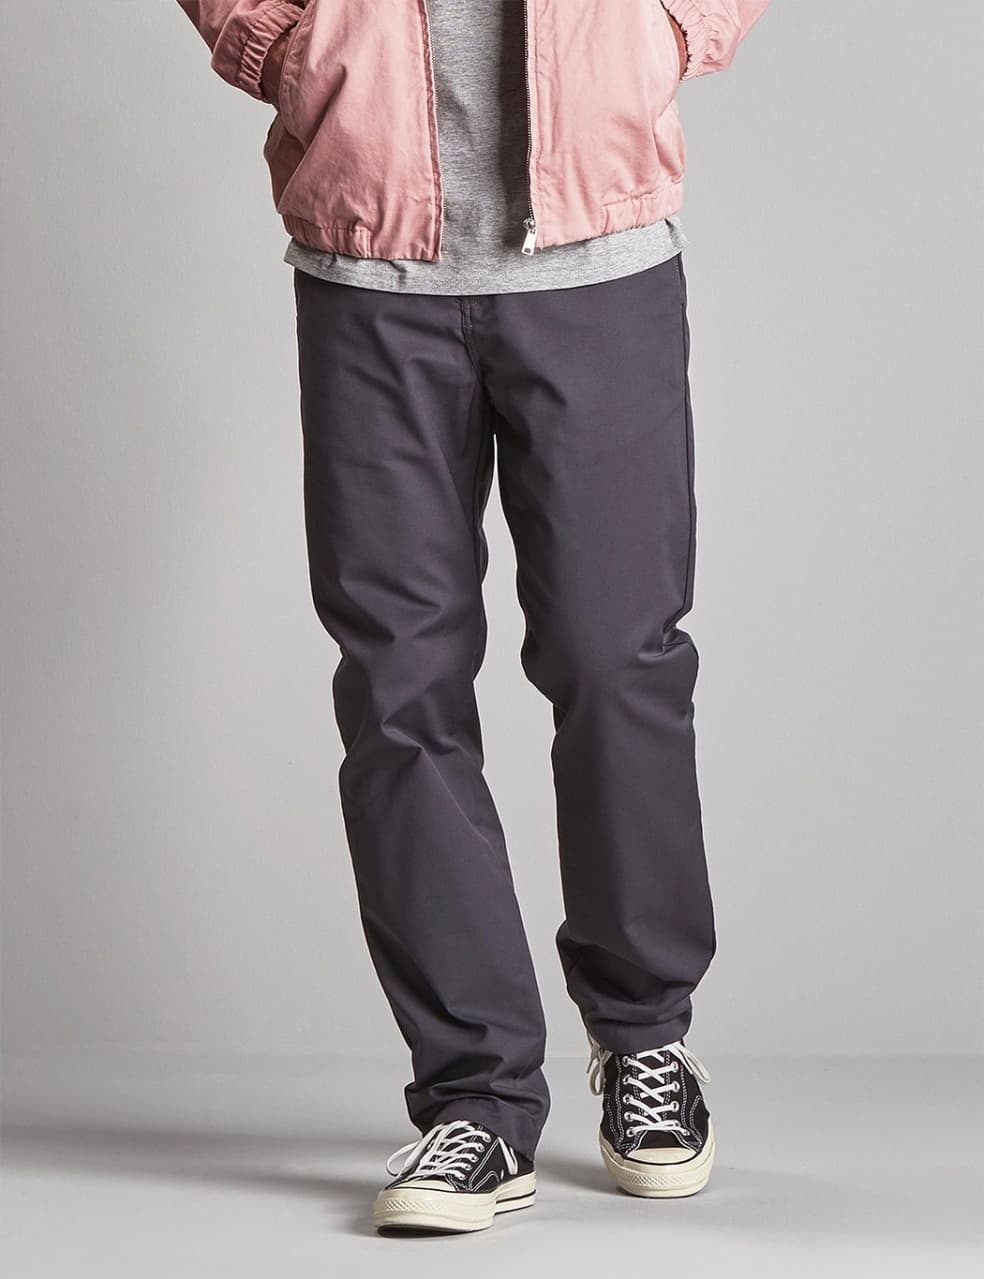 Carhartt-WIP Station Pant - Blacksmith rinsed | Trousers by Carhartt WIP 1